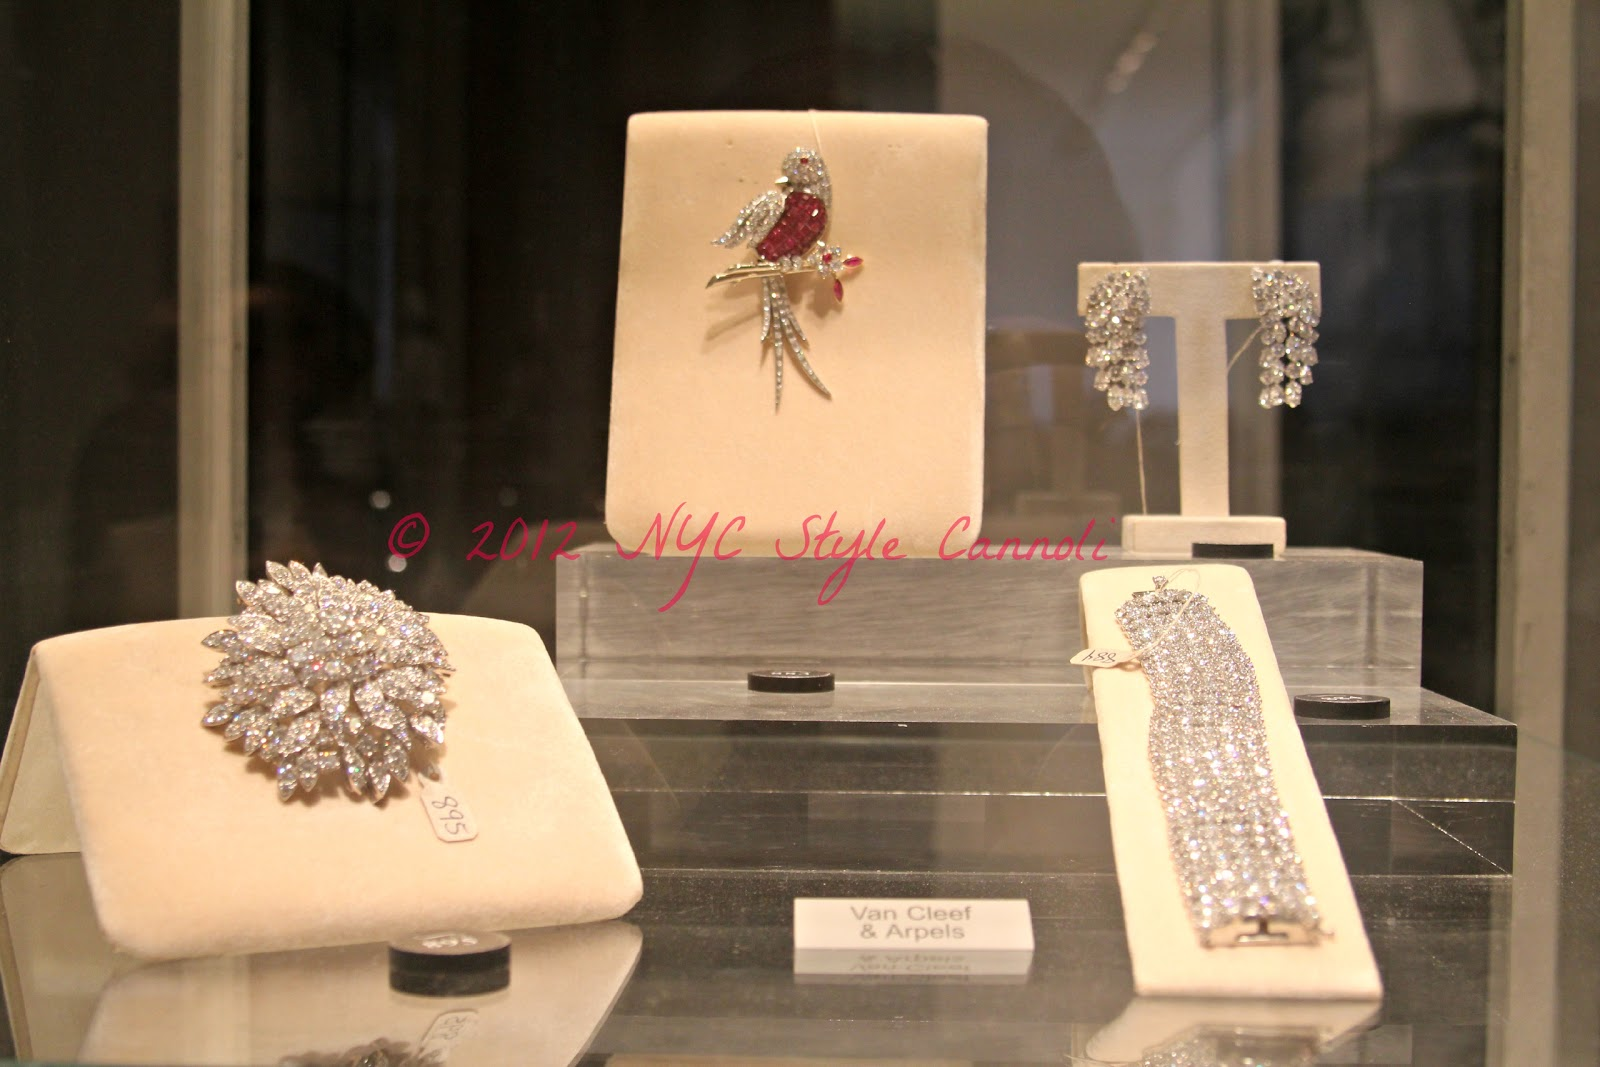 The Jewels At The Brooke Astor Auction At Sotheby S Nyc